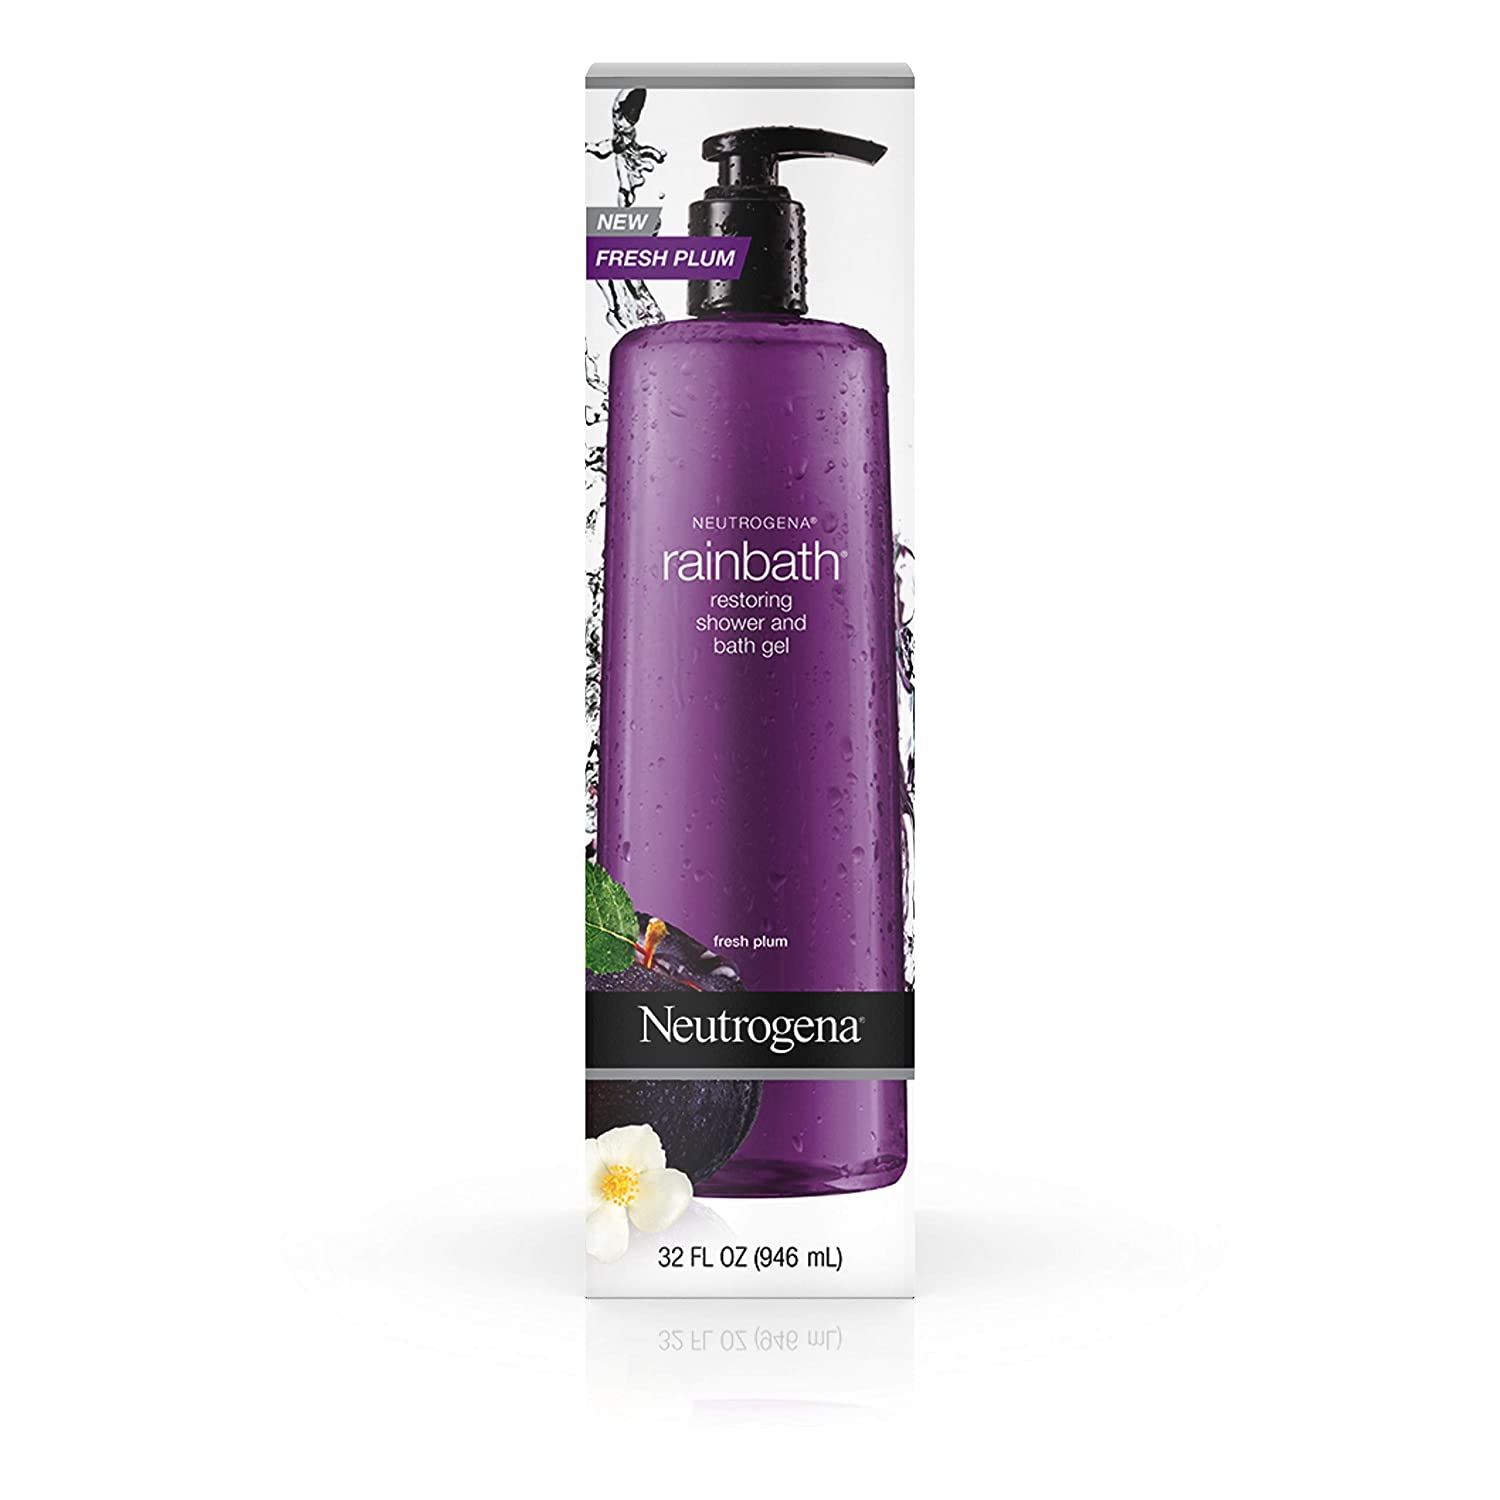 Neutrogena Rainbath Restoring Shower And Bath Gel, Moisturizing Body Wash and Shaving Gel with Clean Rinsing Lather, Fresh Plum and Floral Scent, 32 fl. oz